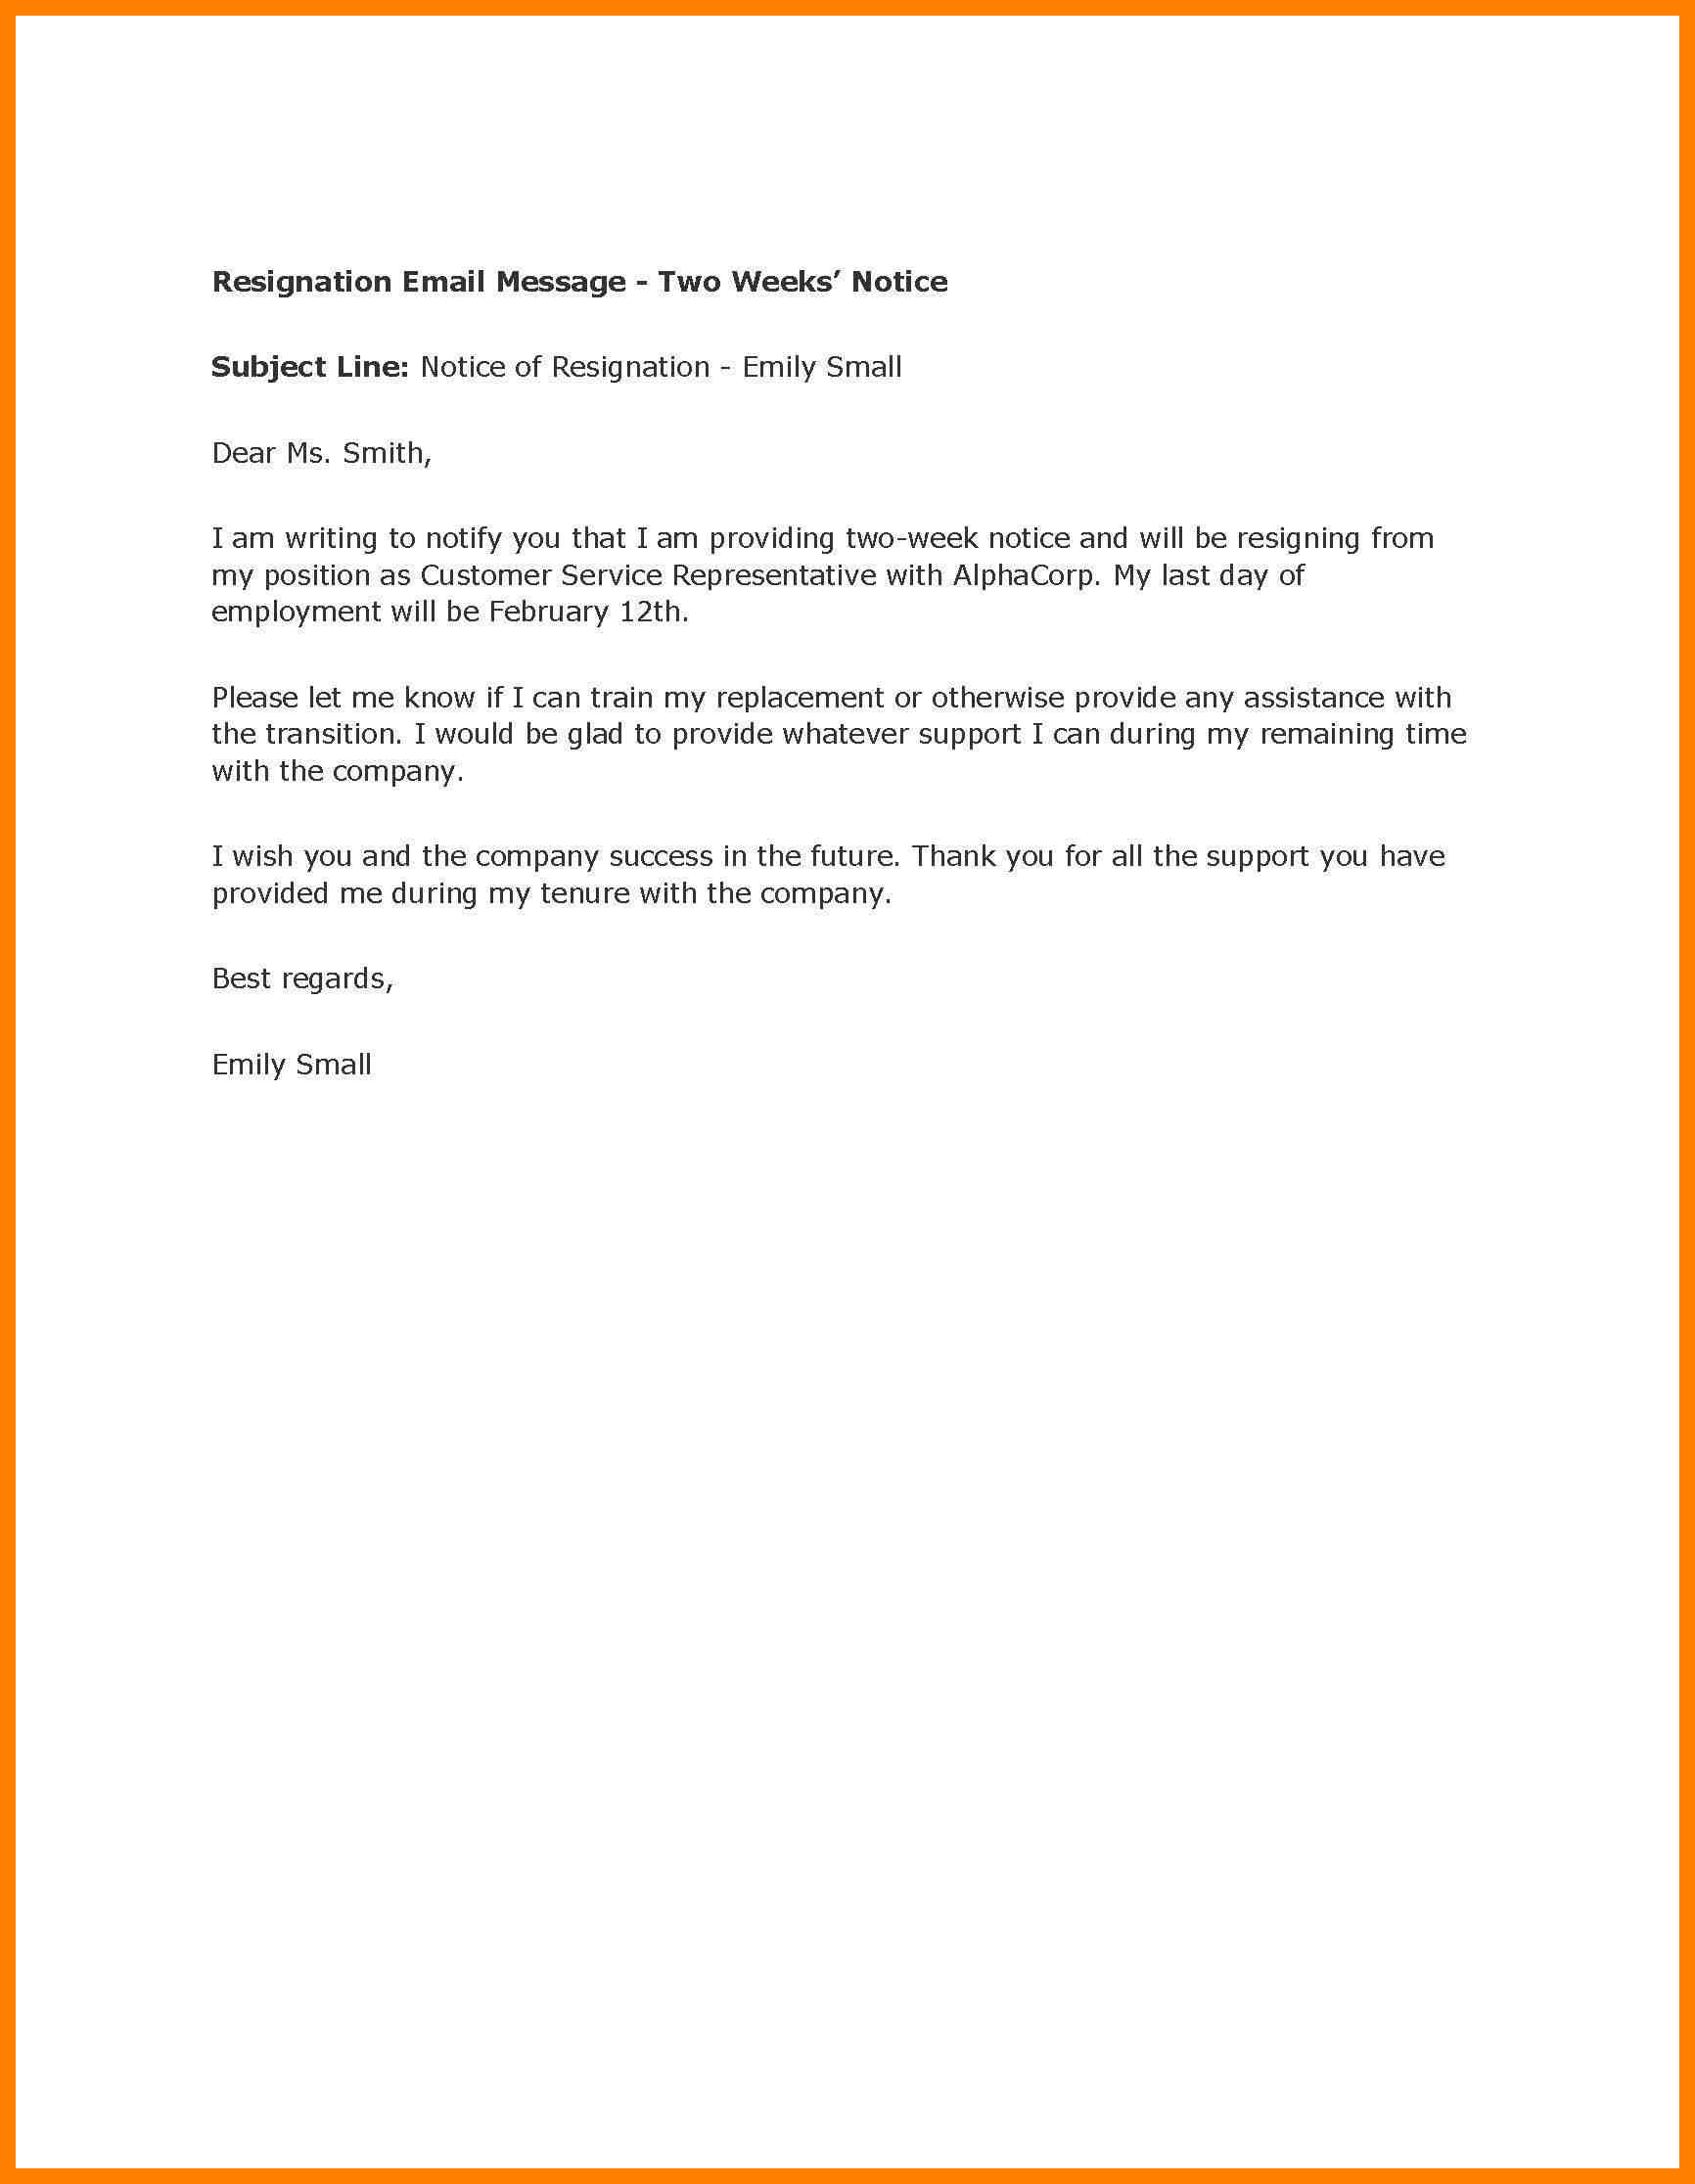 Standard Resignation Letter Template Word - Resignation Letter Examples 2 Weeks Notice Acurnamedia